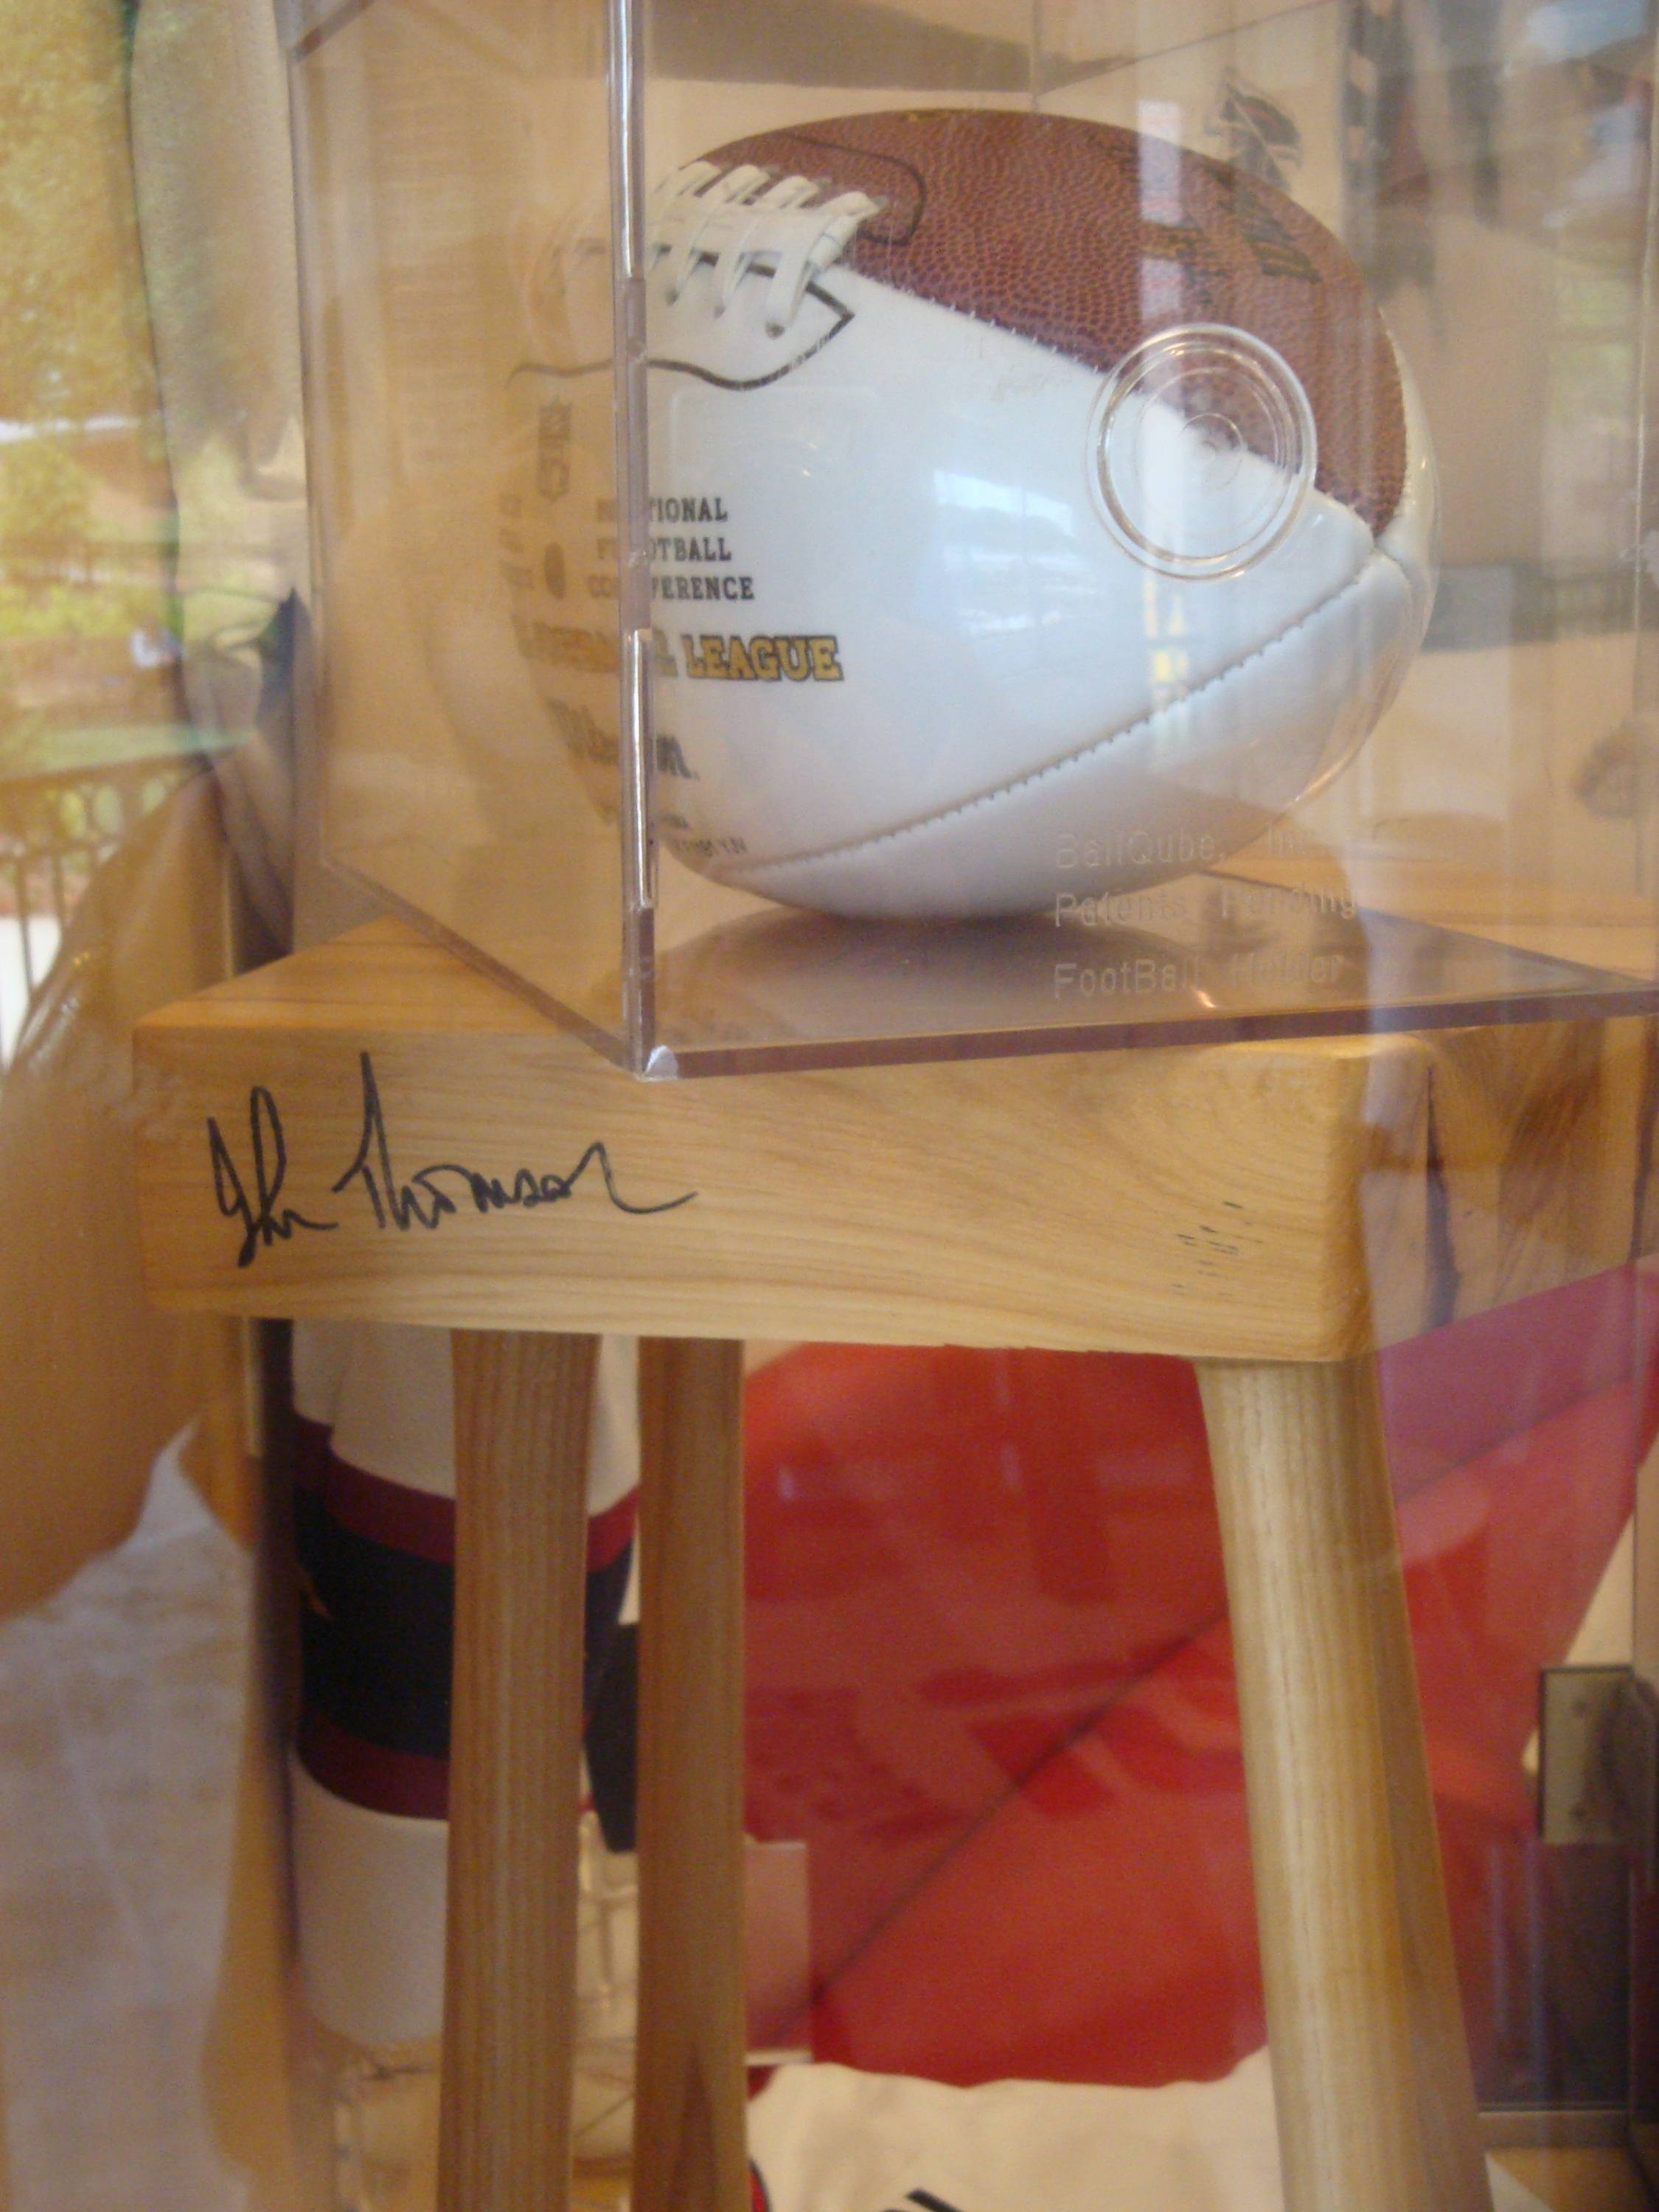 Here's a picture of a signed autograph football!